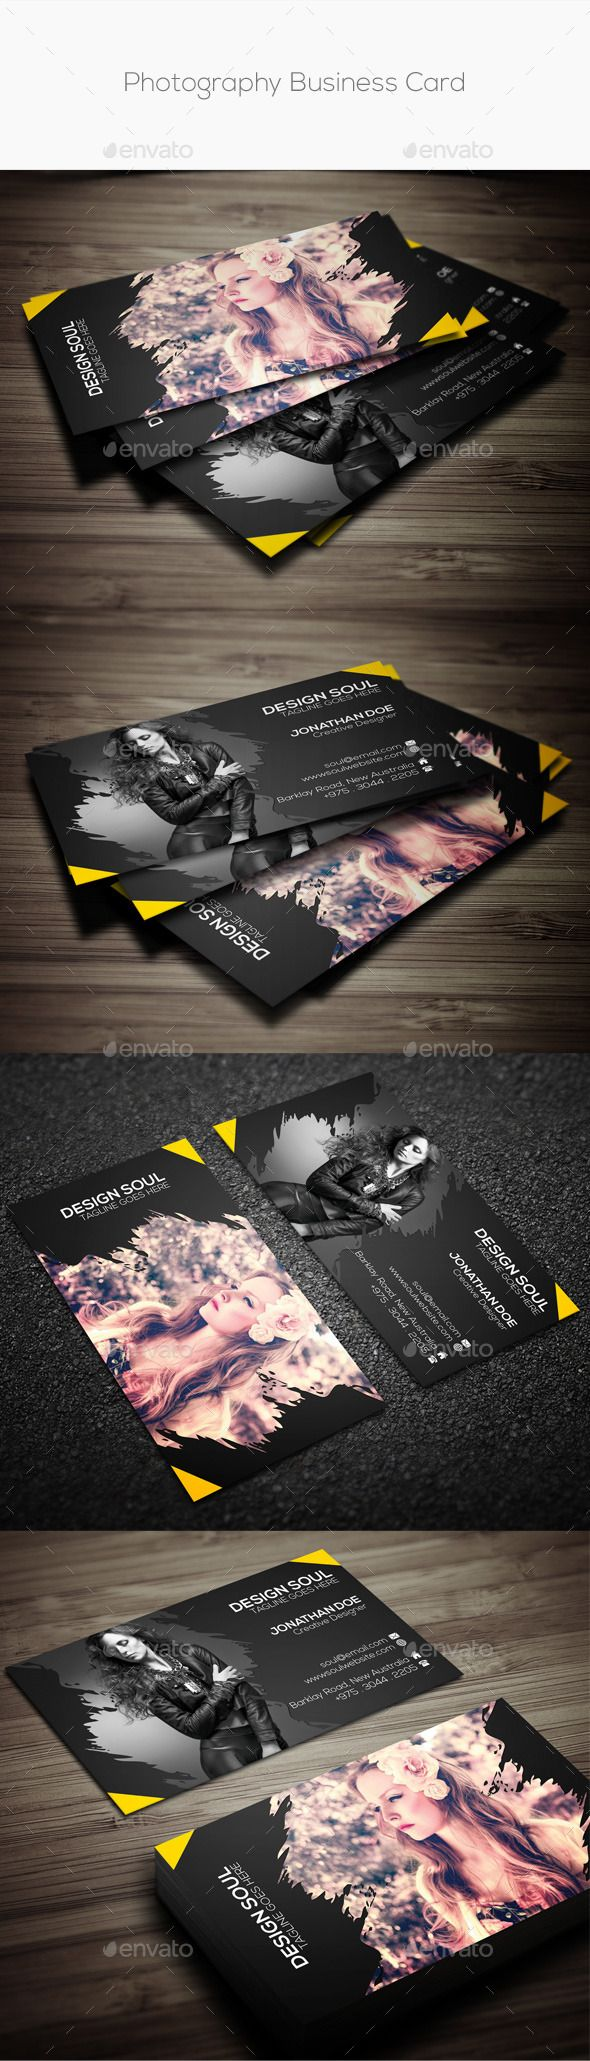 Photography business card photography business cards photography photography business card by adobe photoshop fully layered psd files easy customizable and editable easy to use your own photossmart object option reheart Image collections